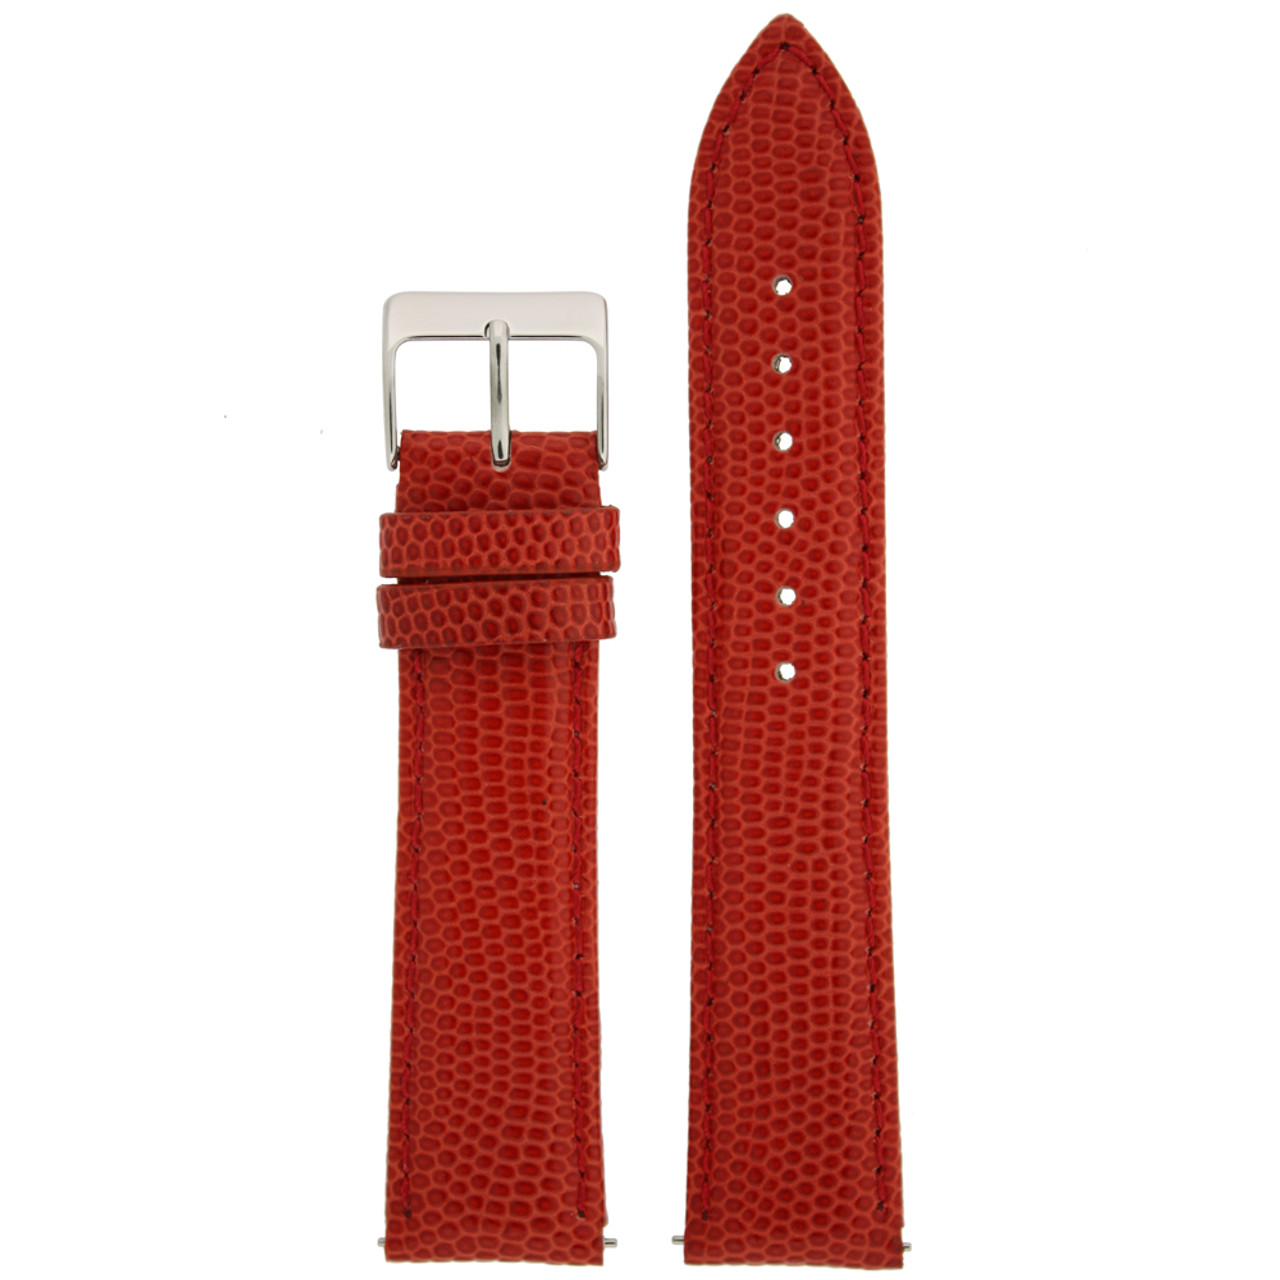 Watch Band Genuine Leather Lizard Grain Red Quick Release Built-in Pins